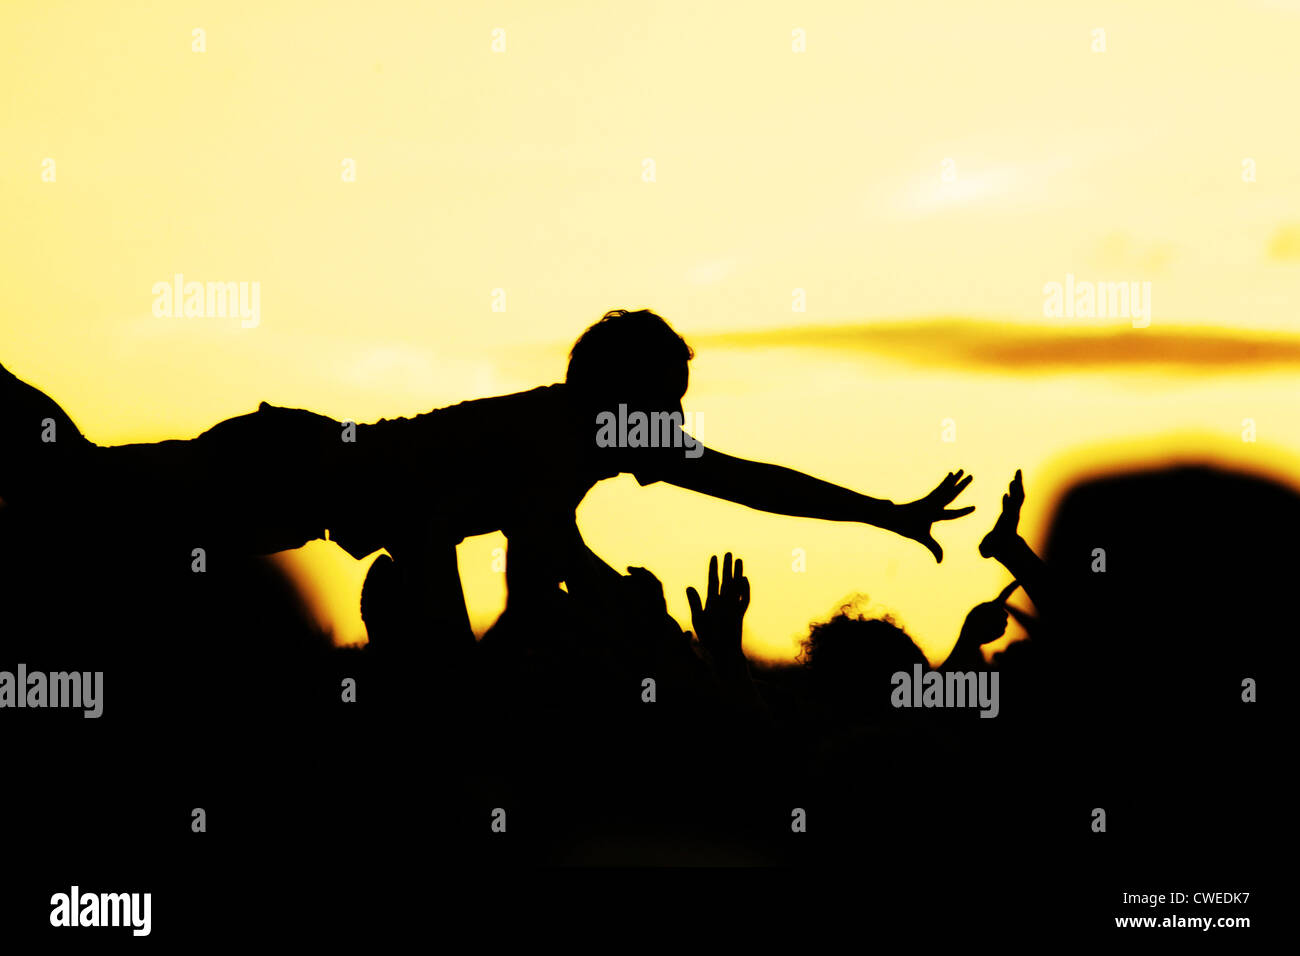 popular music concert,audience,crowd surfing - Stock Image